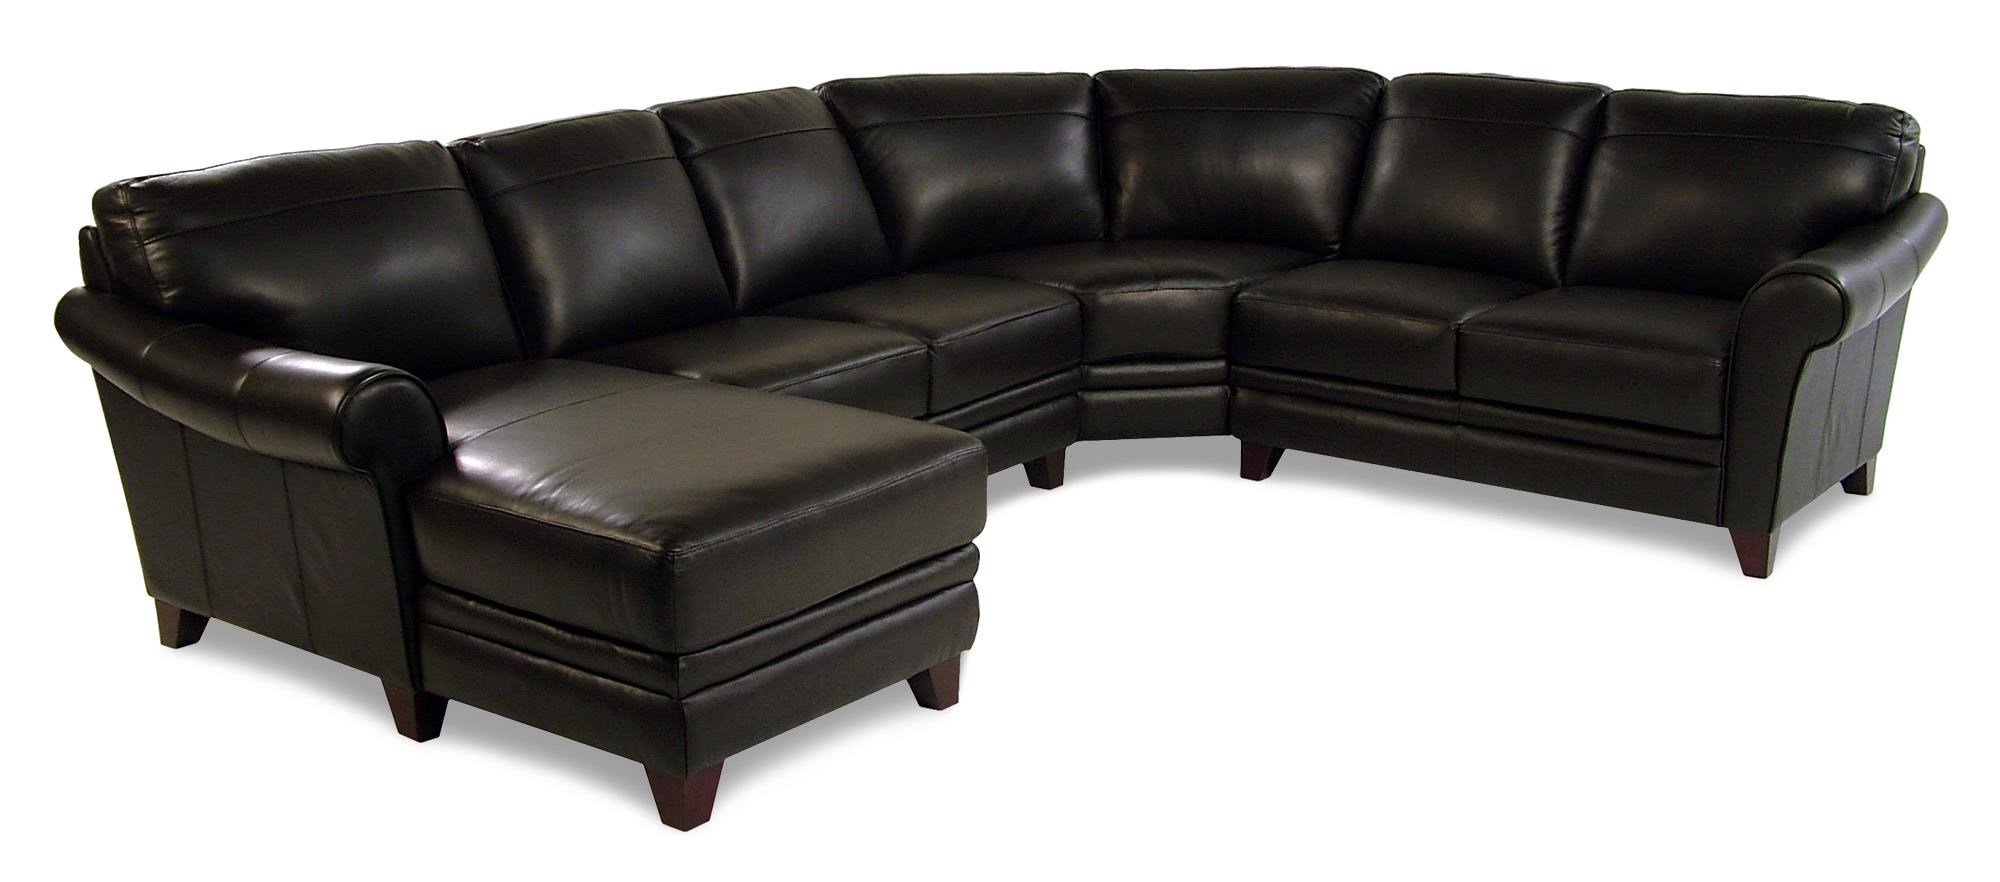 Tarrantino 4 Piece Leather Sectional W/ LAF Chaise By Loft Leather